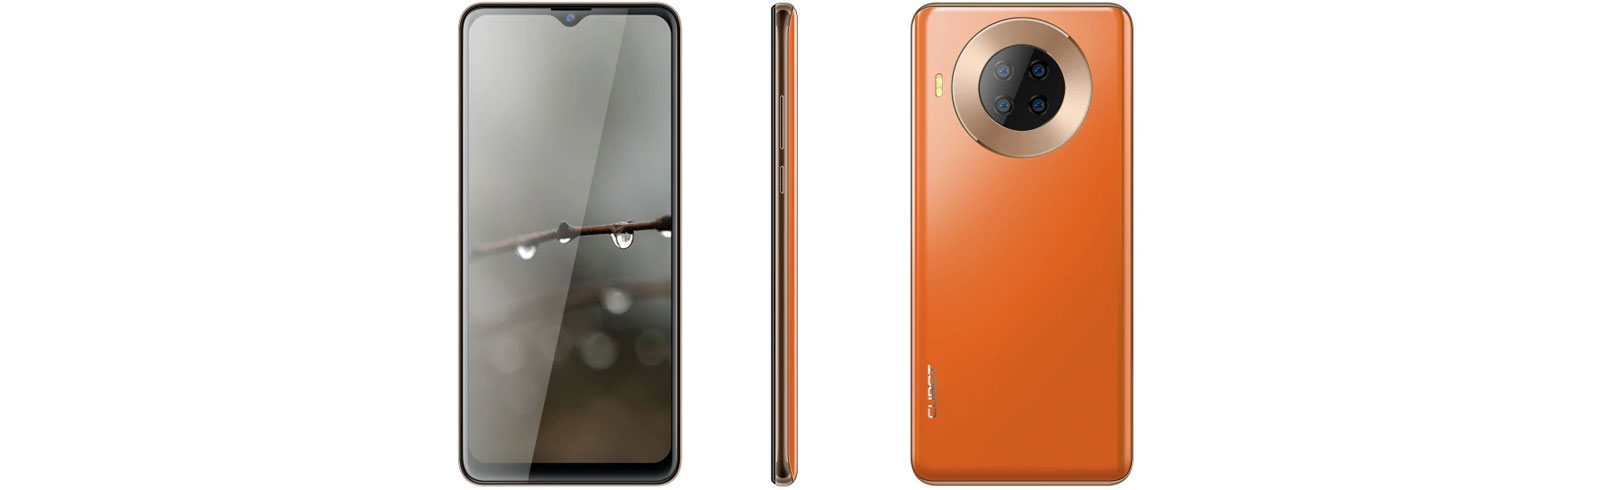 Cubot Note 20 - excellent if you want to get a Huawei Mate 30 Pro 5G design for a hundred bucks